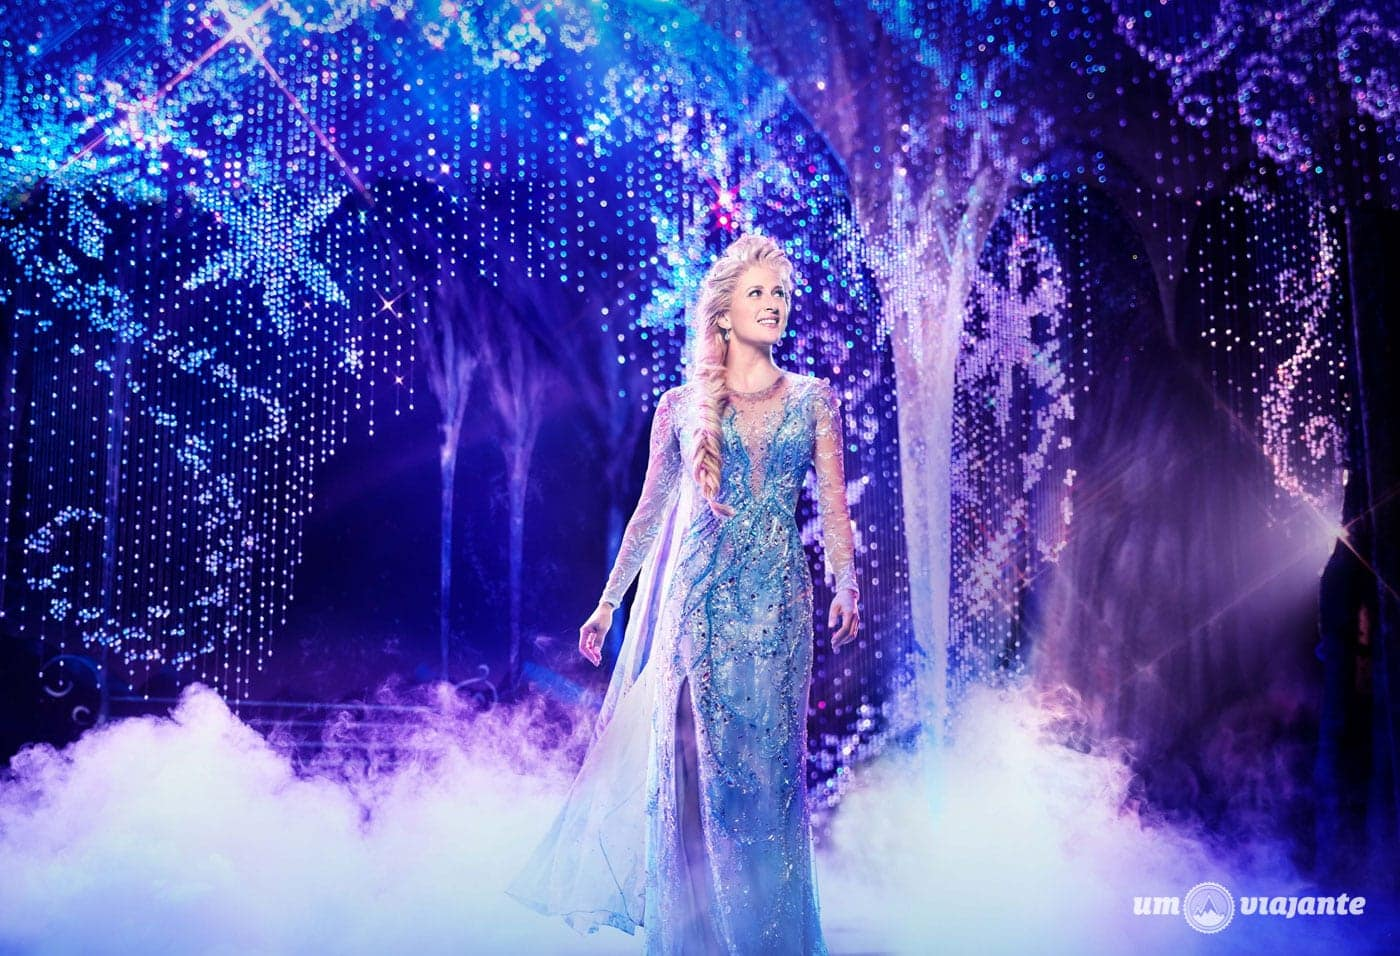 Musical Frozen na Broadway: vale a pena?